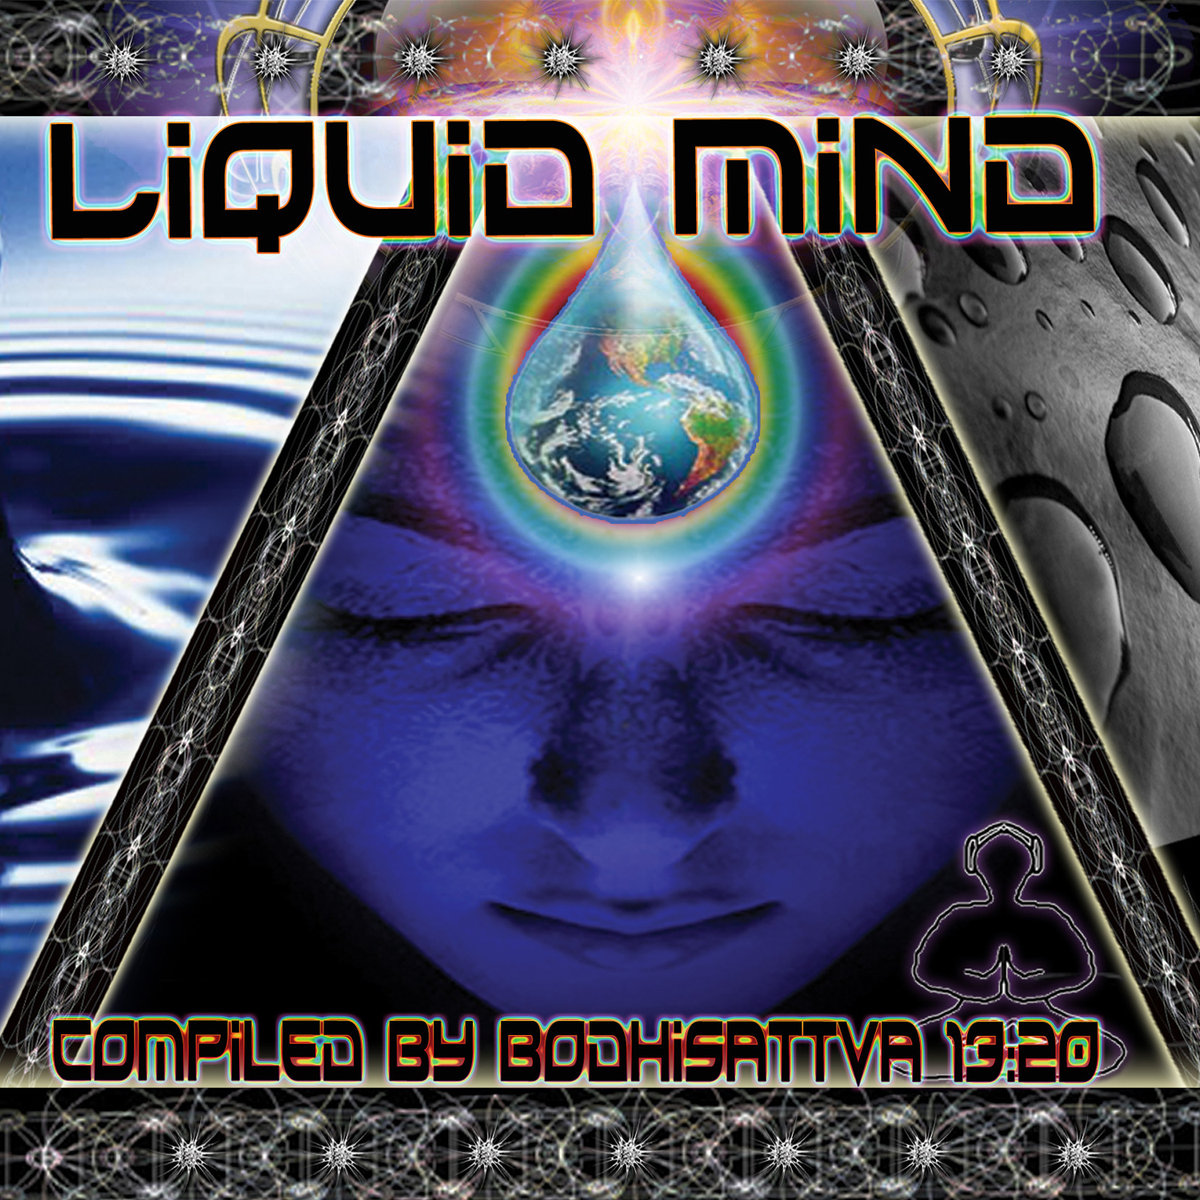 Various Artists - Liquid Mind (Compiled by Bodhisattva 13:20)